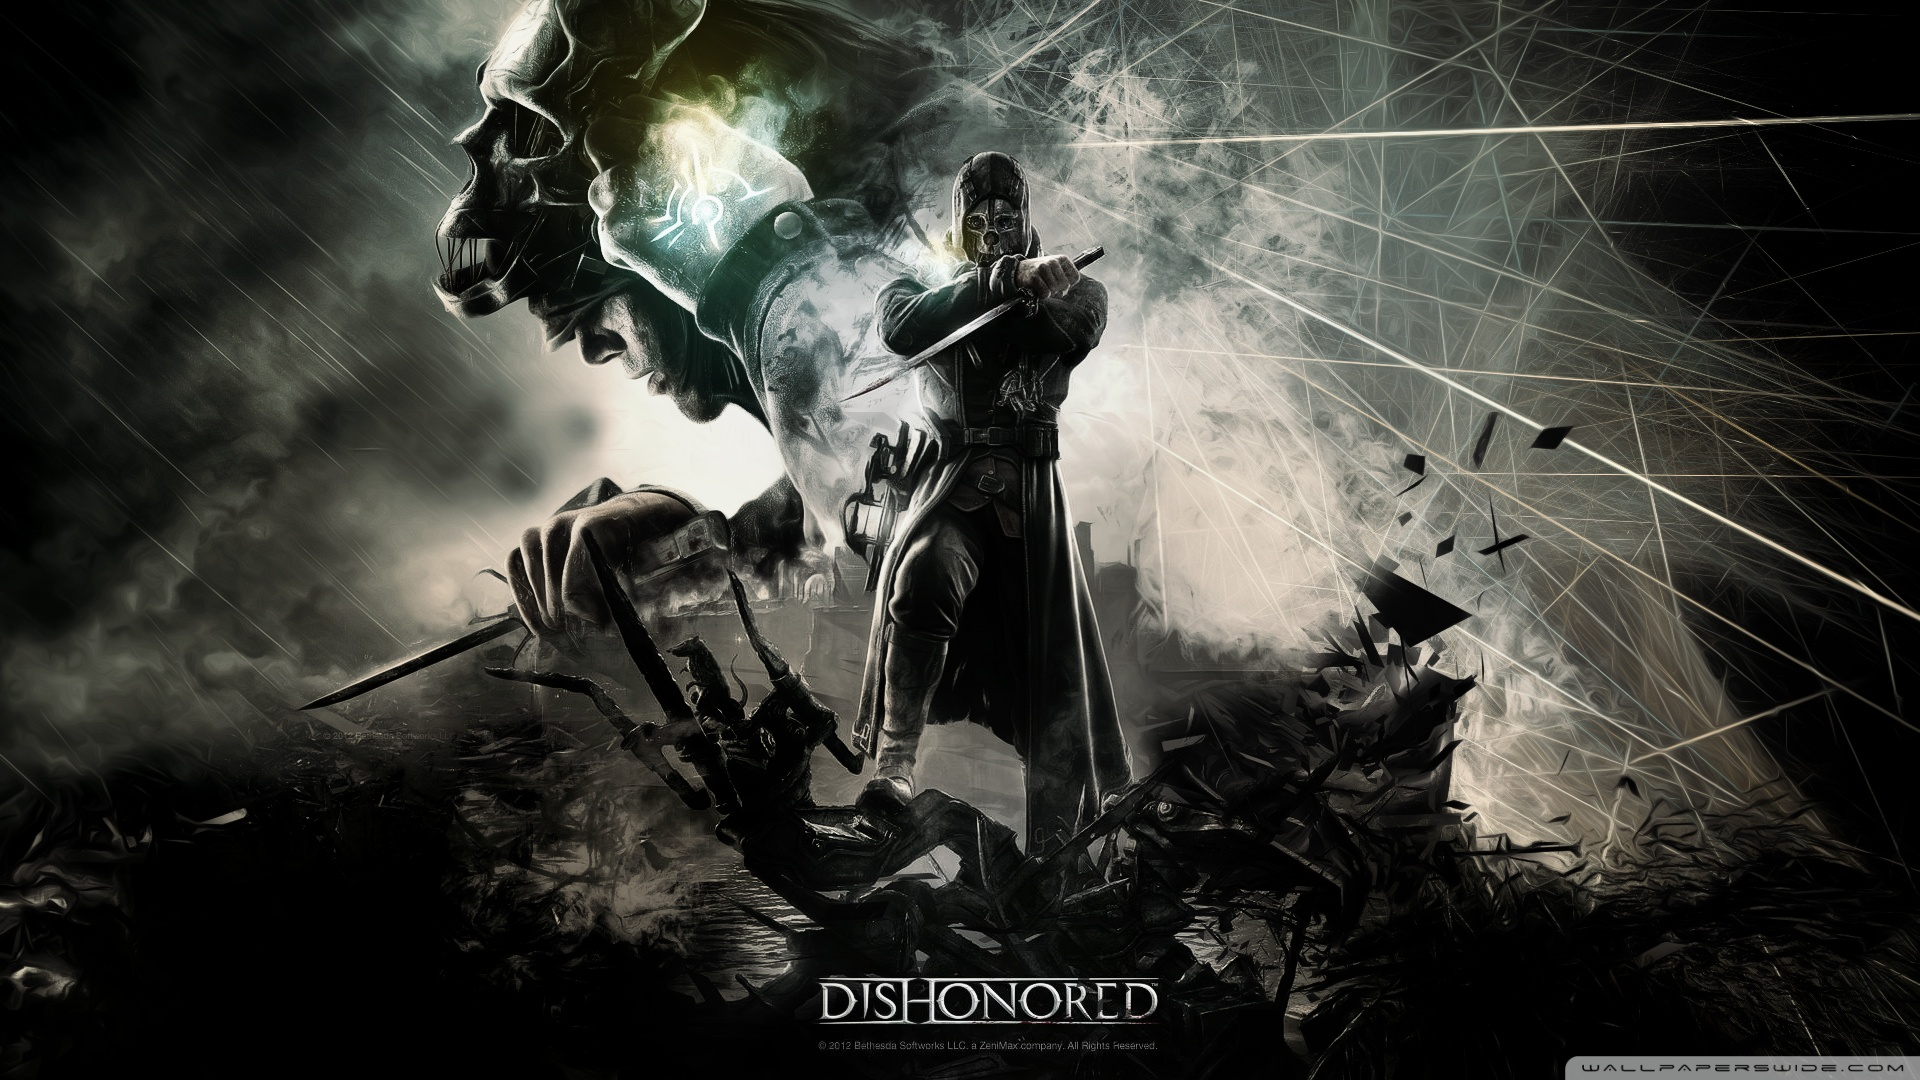 Dishonored Wallpaper, HQFX Dishonored Wallpapers for Free, Wallpapers